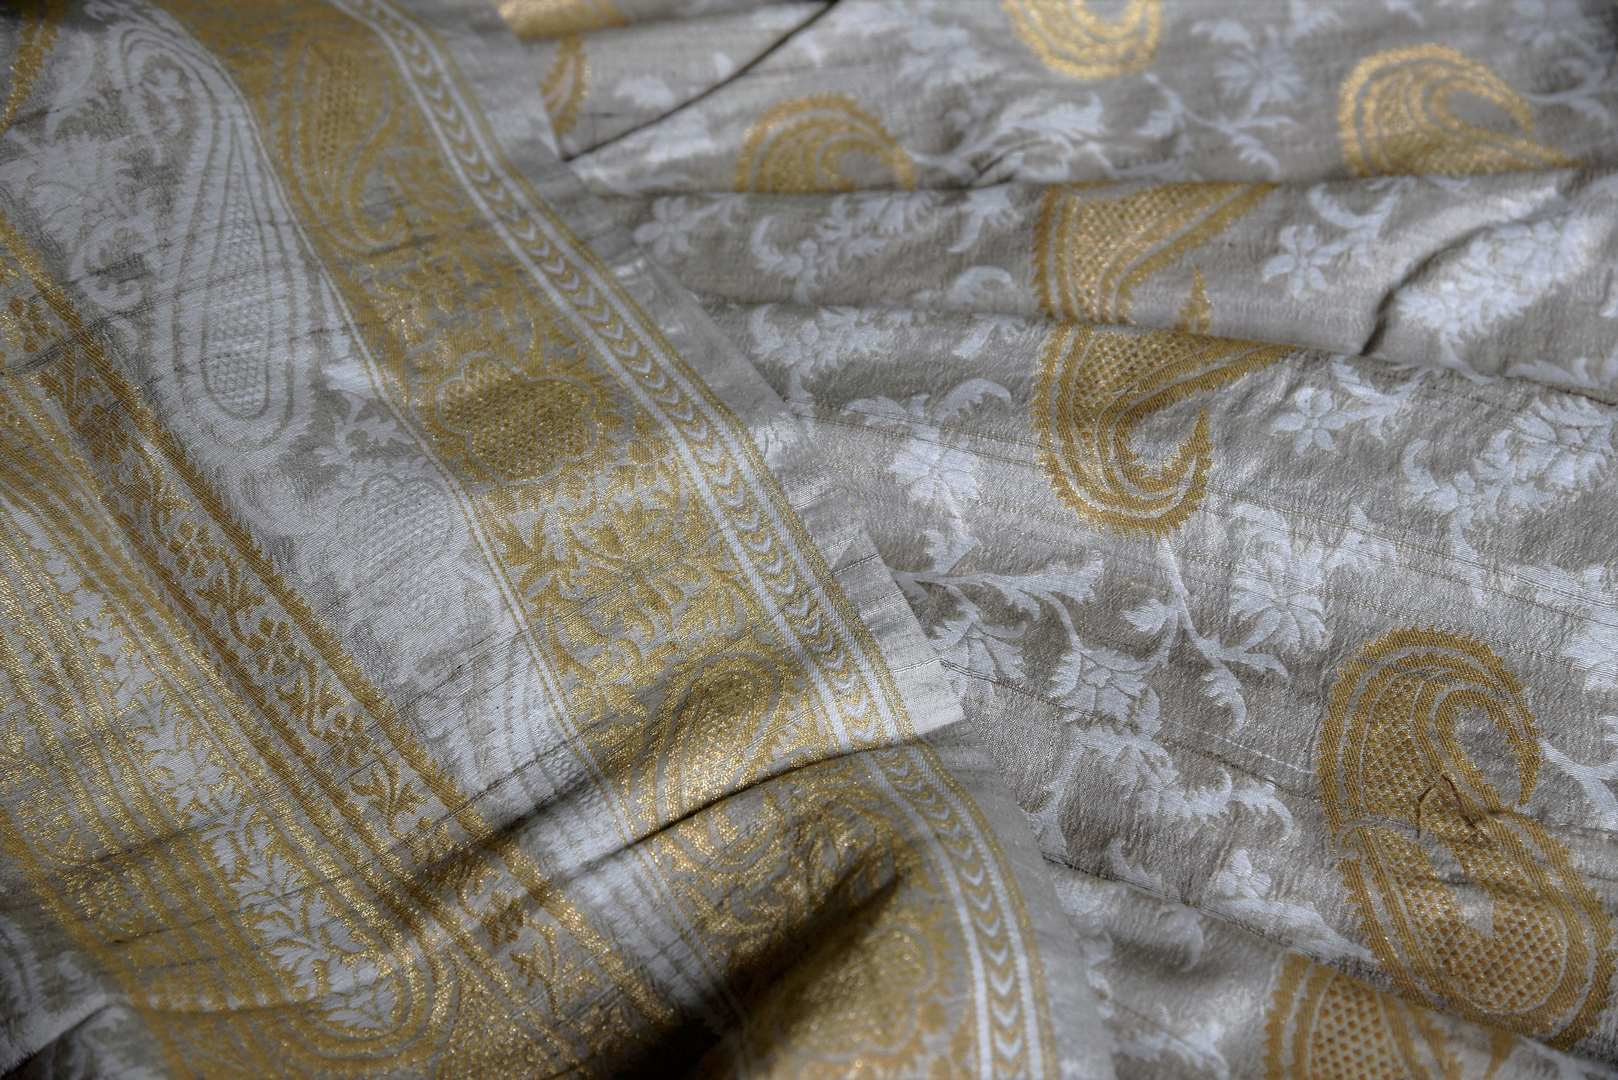 Buy elegant off-white khaddi Banarasi saree with zari border online in USA. Adorn your style with a range of exquisite handwoven sarees from Pure Elegance Indian clothing store in USA. We have an exquisite range of Indian designer sarees, silk saris, Banarasi saris and many other varieties also available at our online store.-details